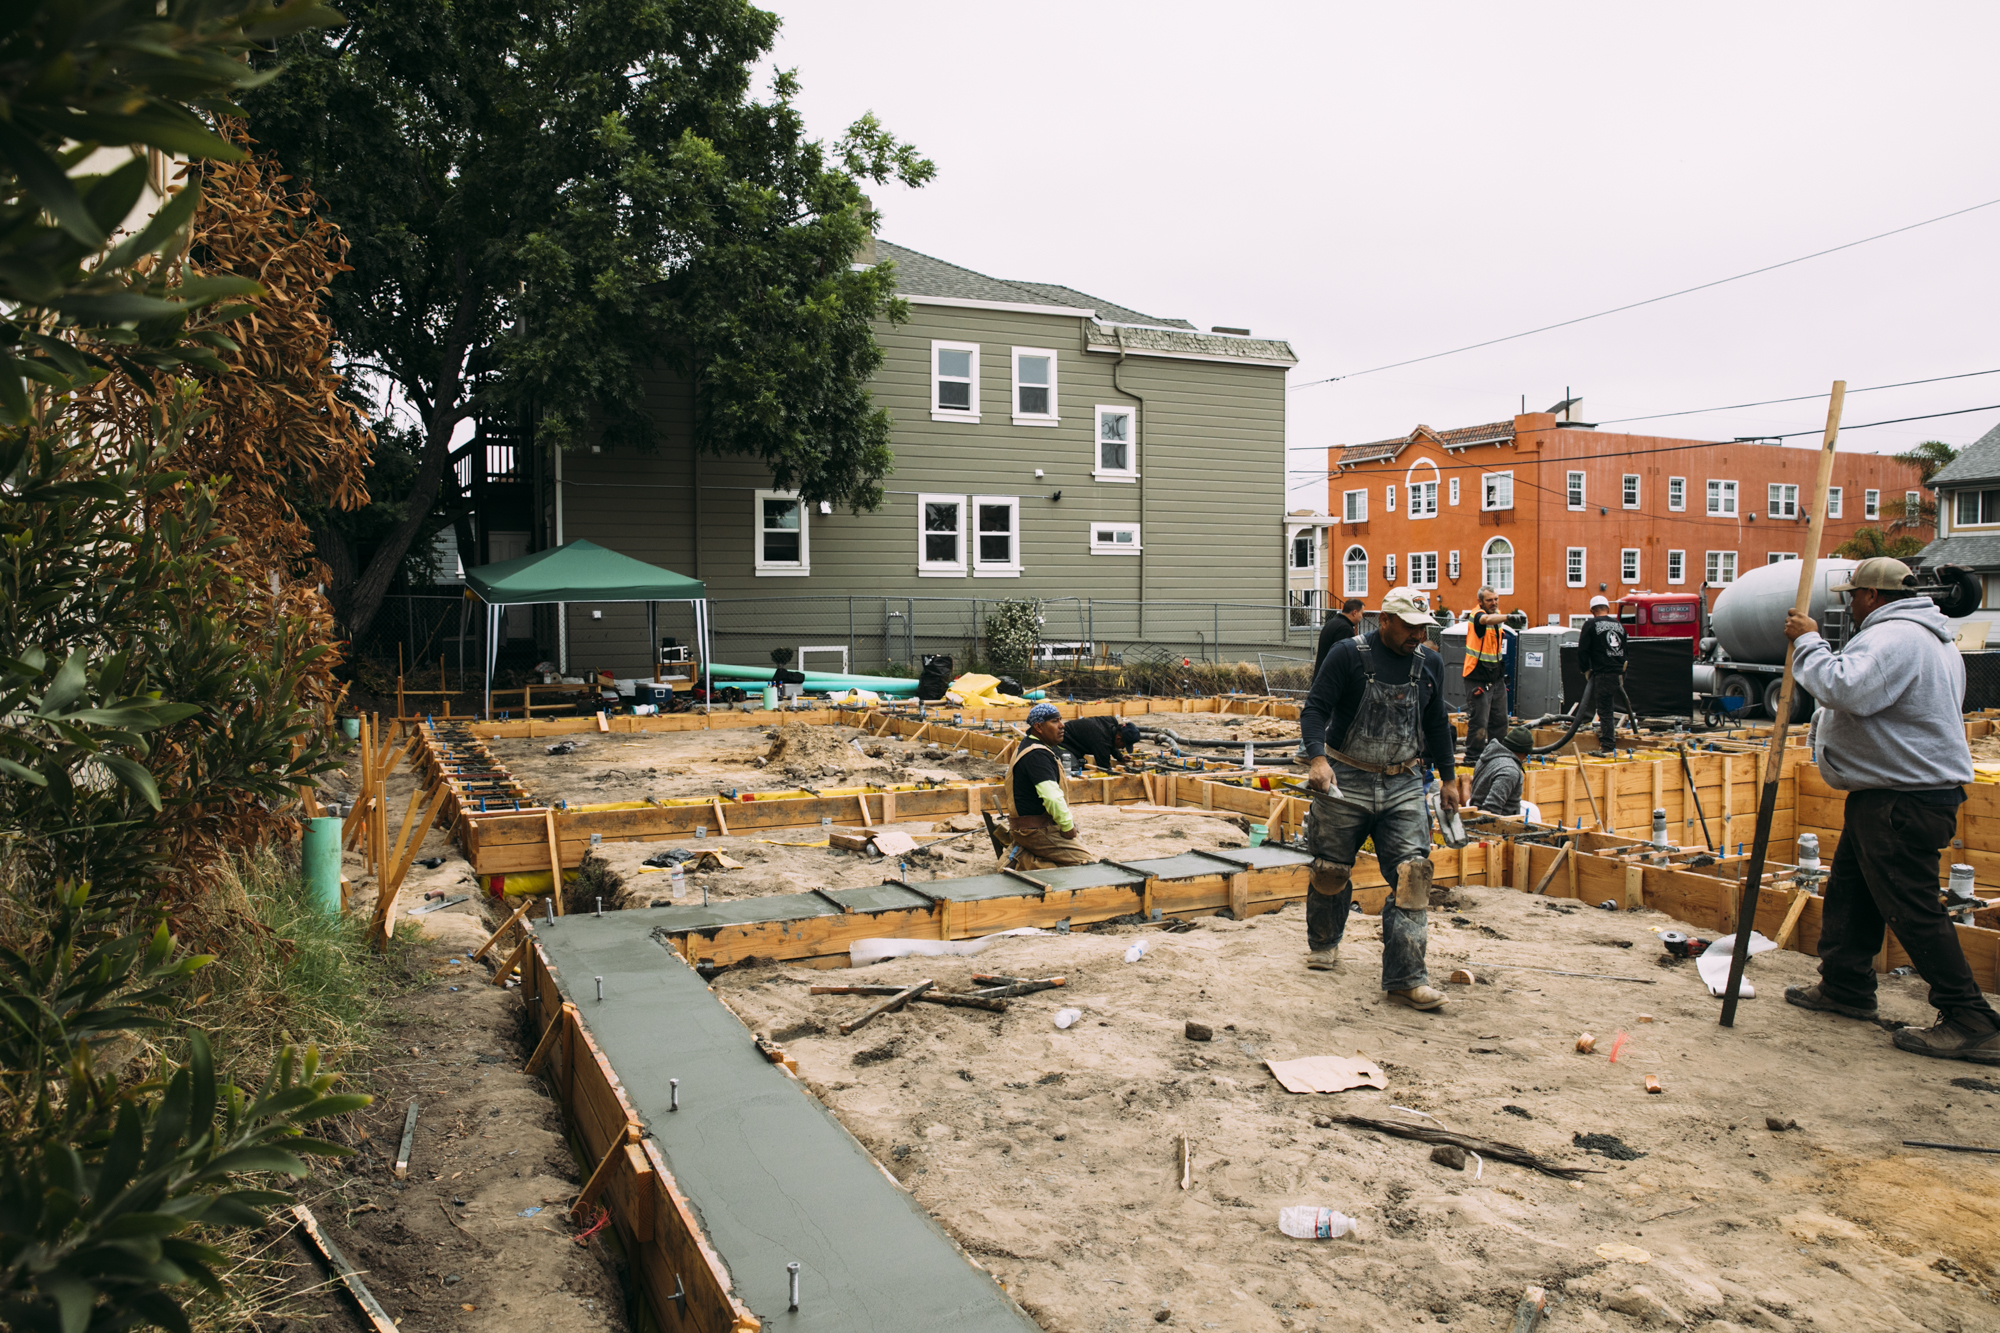 061019-00307_18thLinden_Construction.jpg